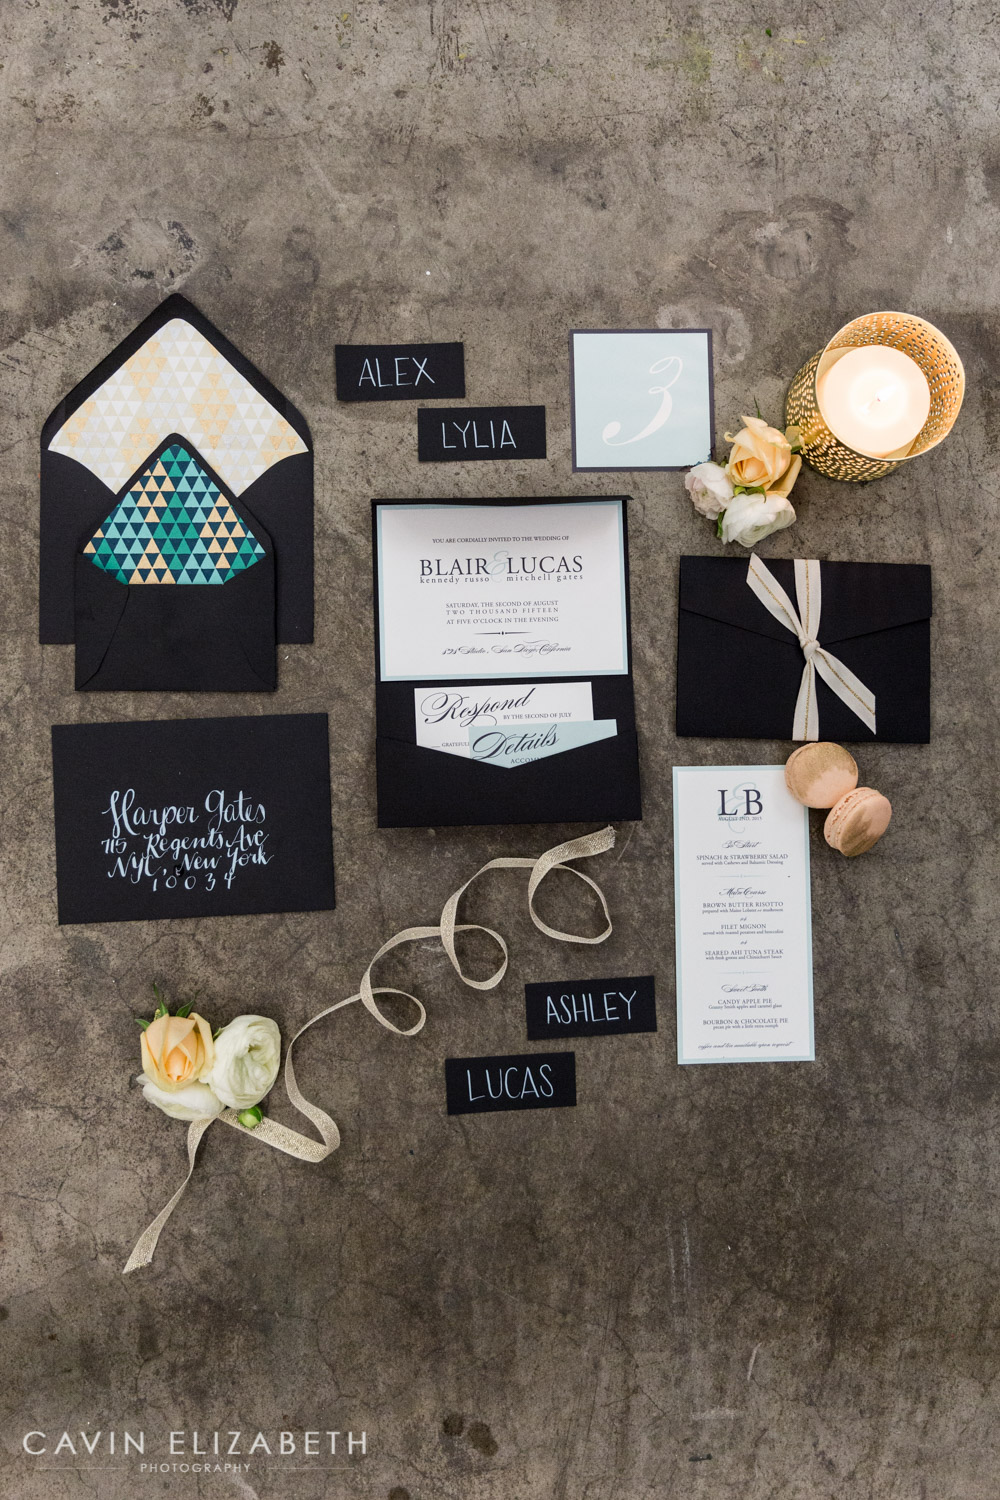 Save The Date Card Ideas In San Diego, Paper Invitations By Honestly Kate  In San